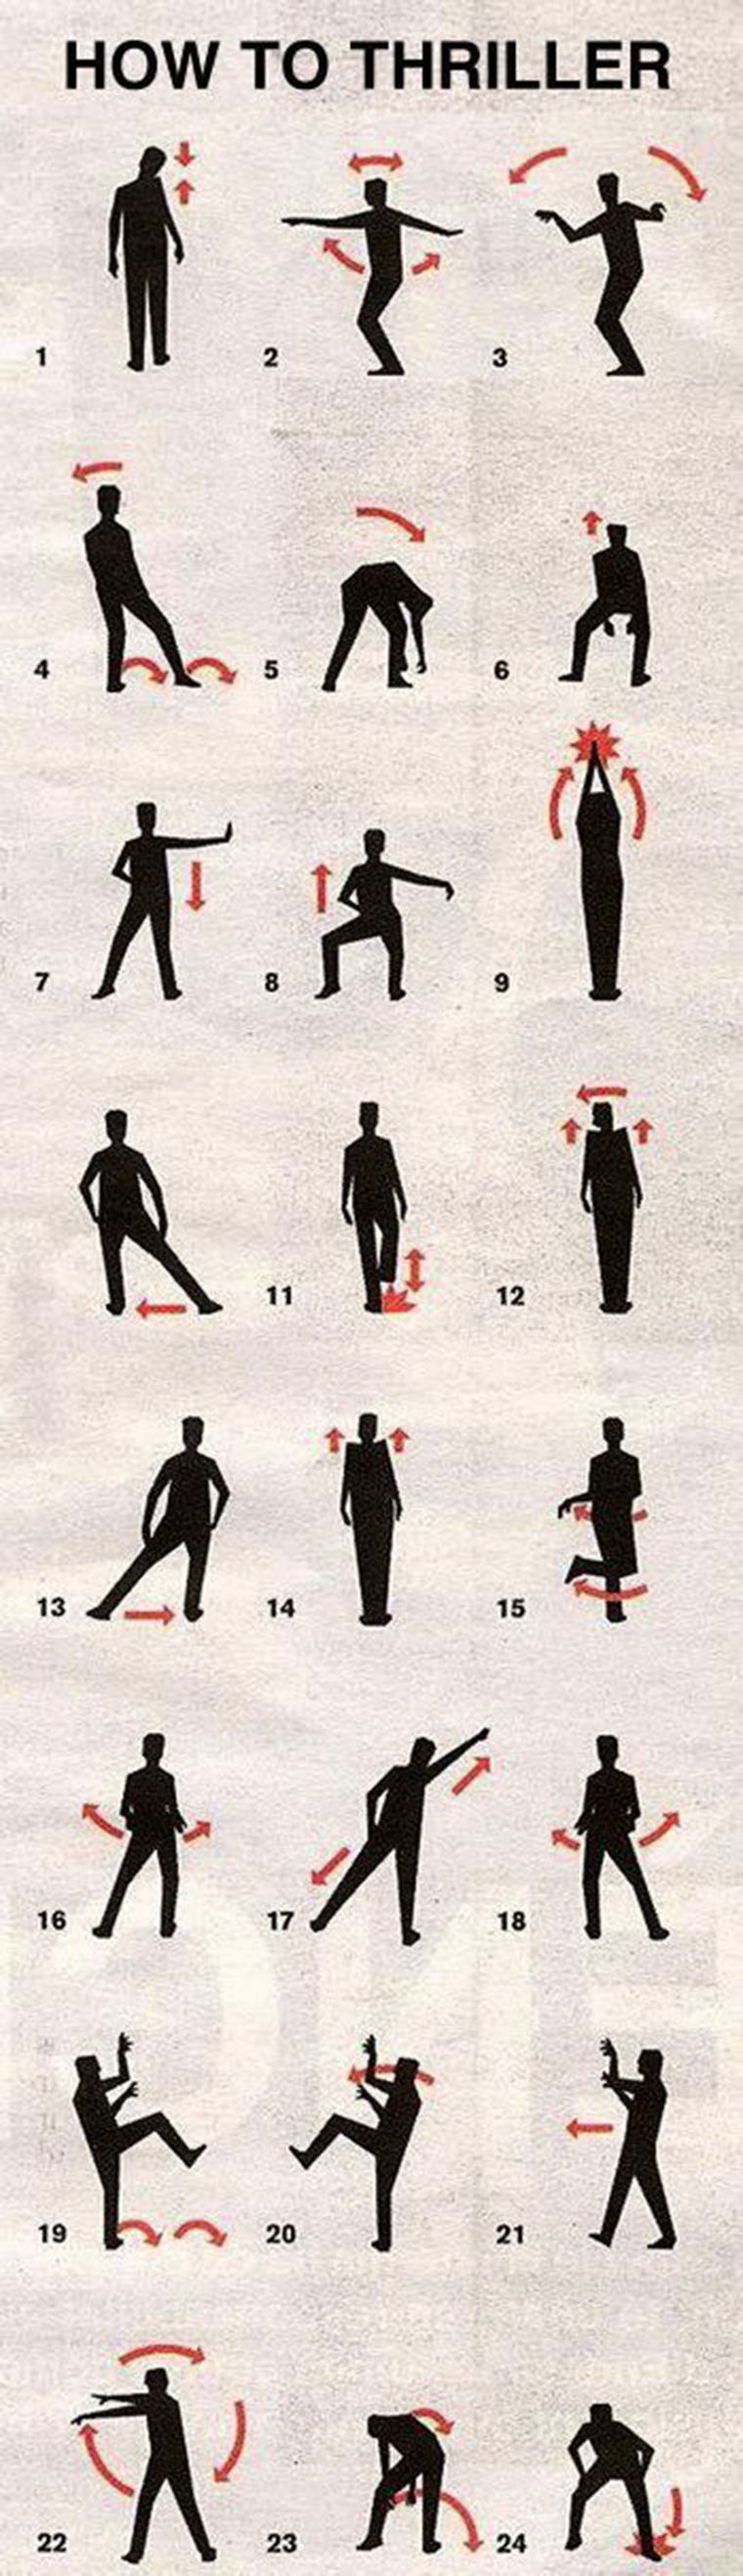 how to thriller mj